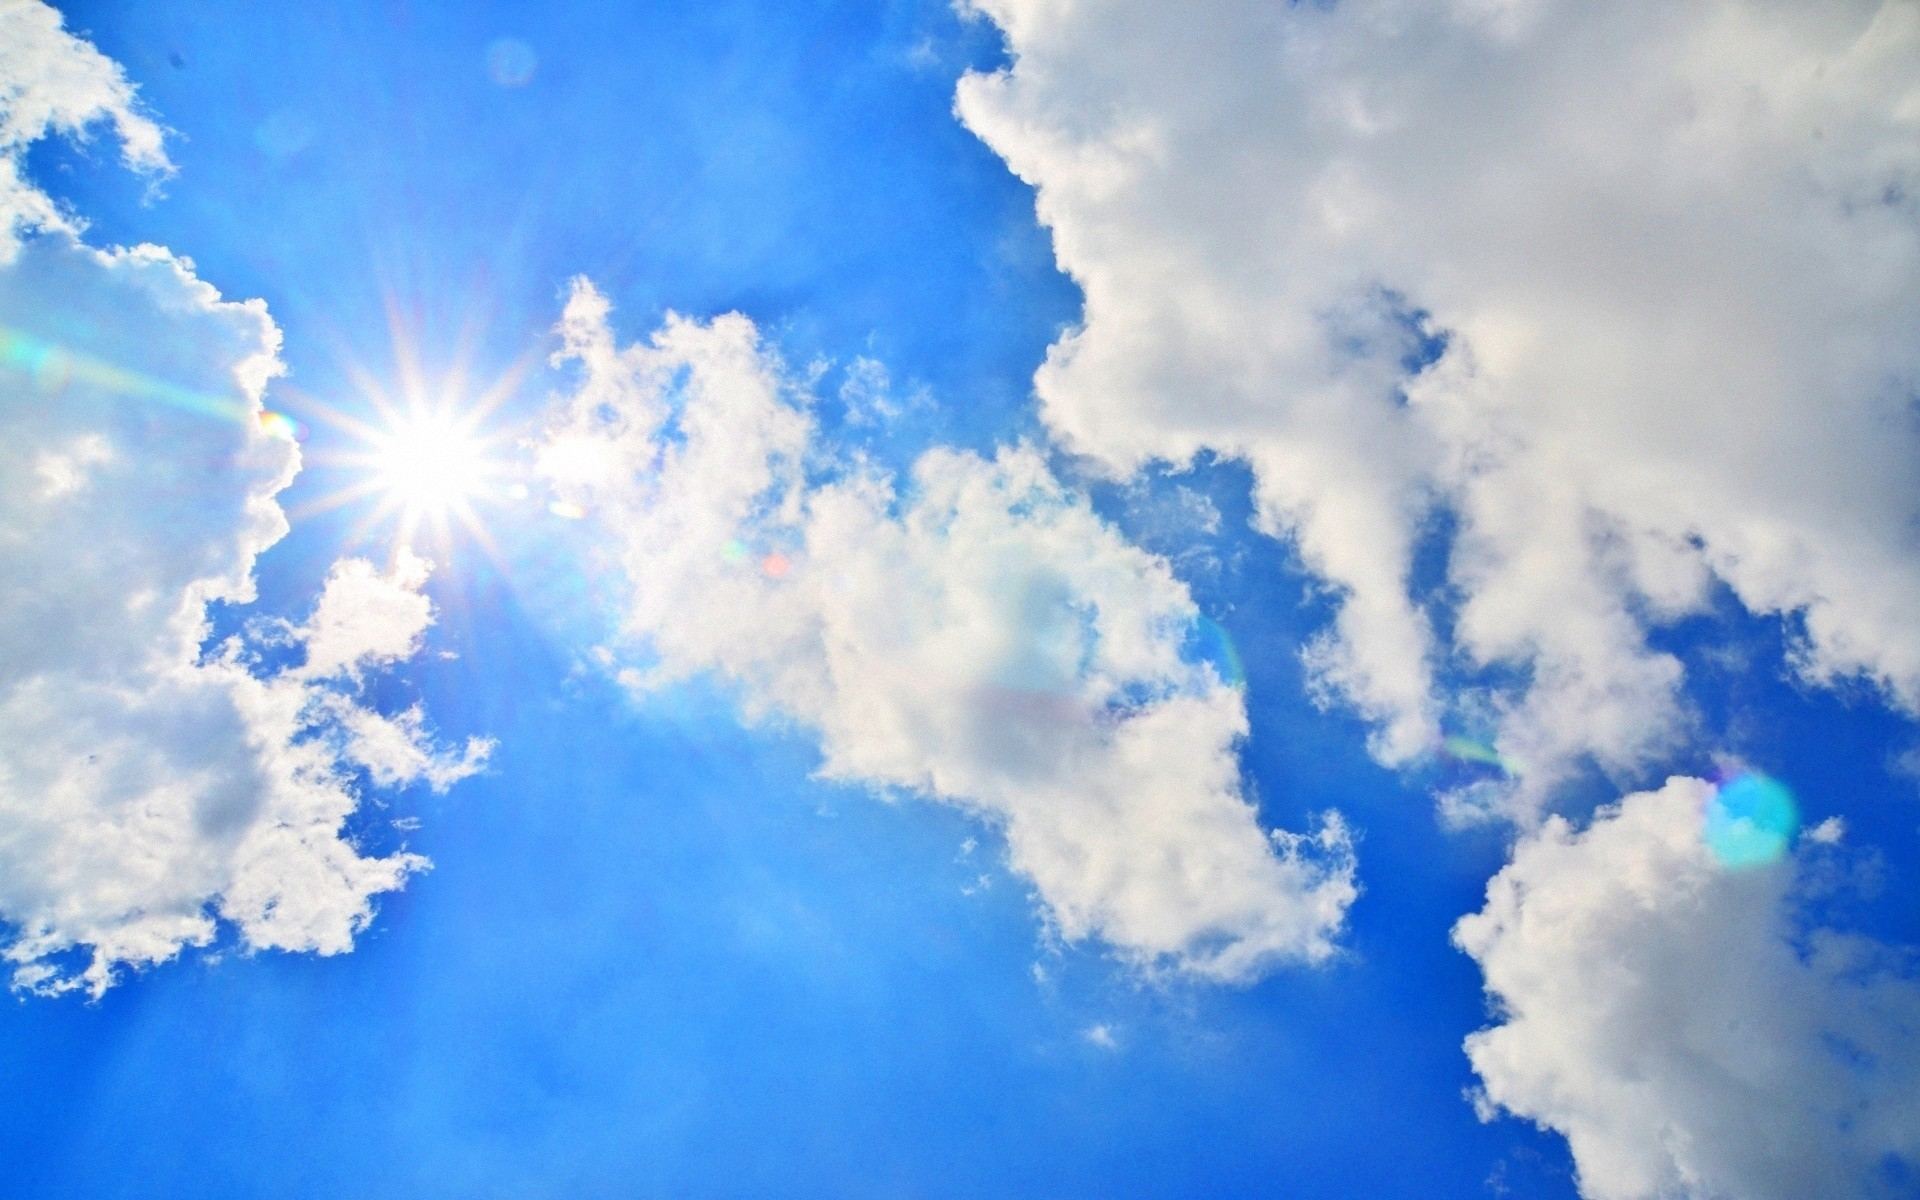 Download Blue sky, Sun, Light, Clouds, Day, Air Wallpaper, Background